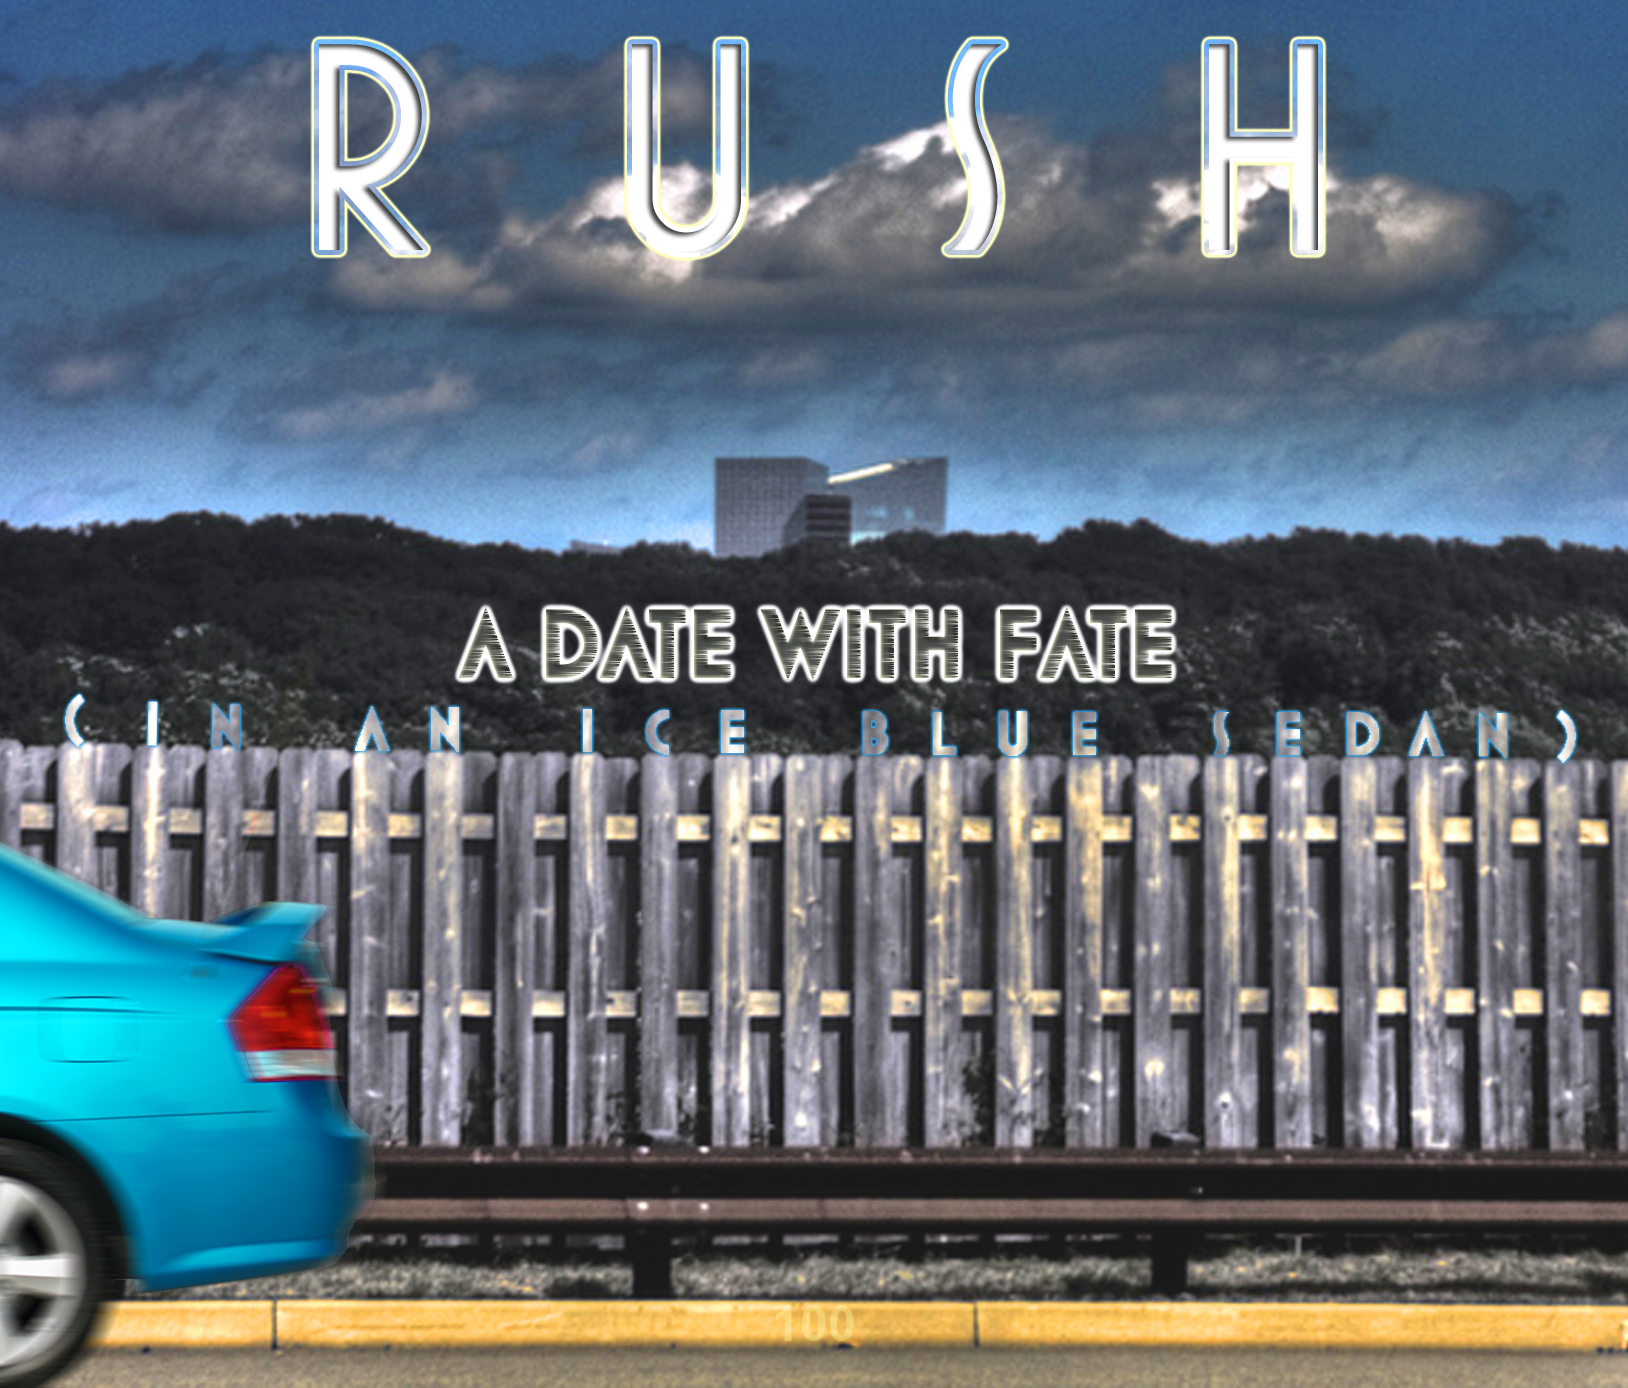 Rush - A Date With Fate (In An Ice Blue Sedan)